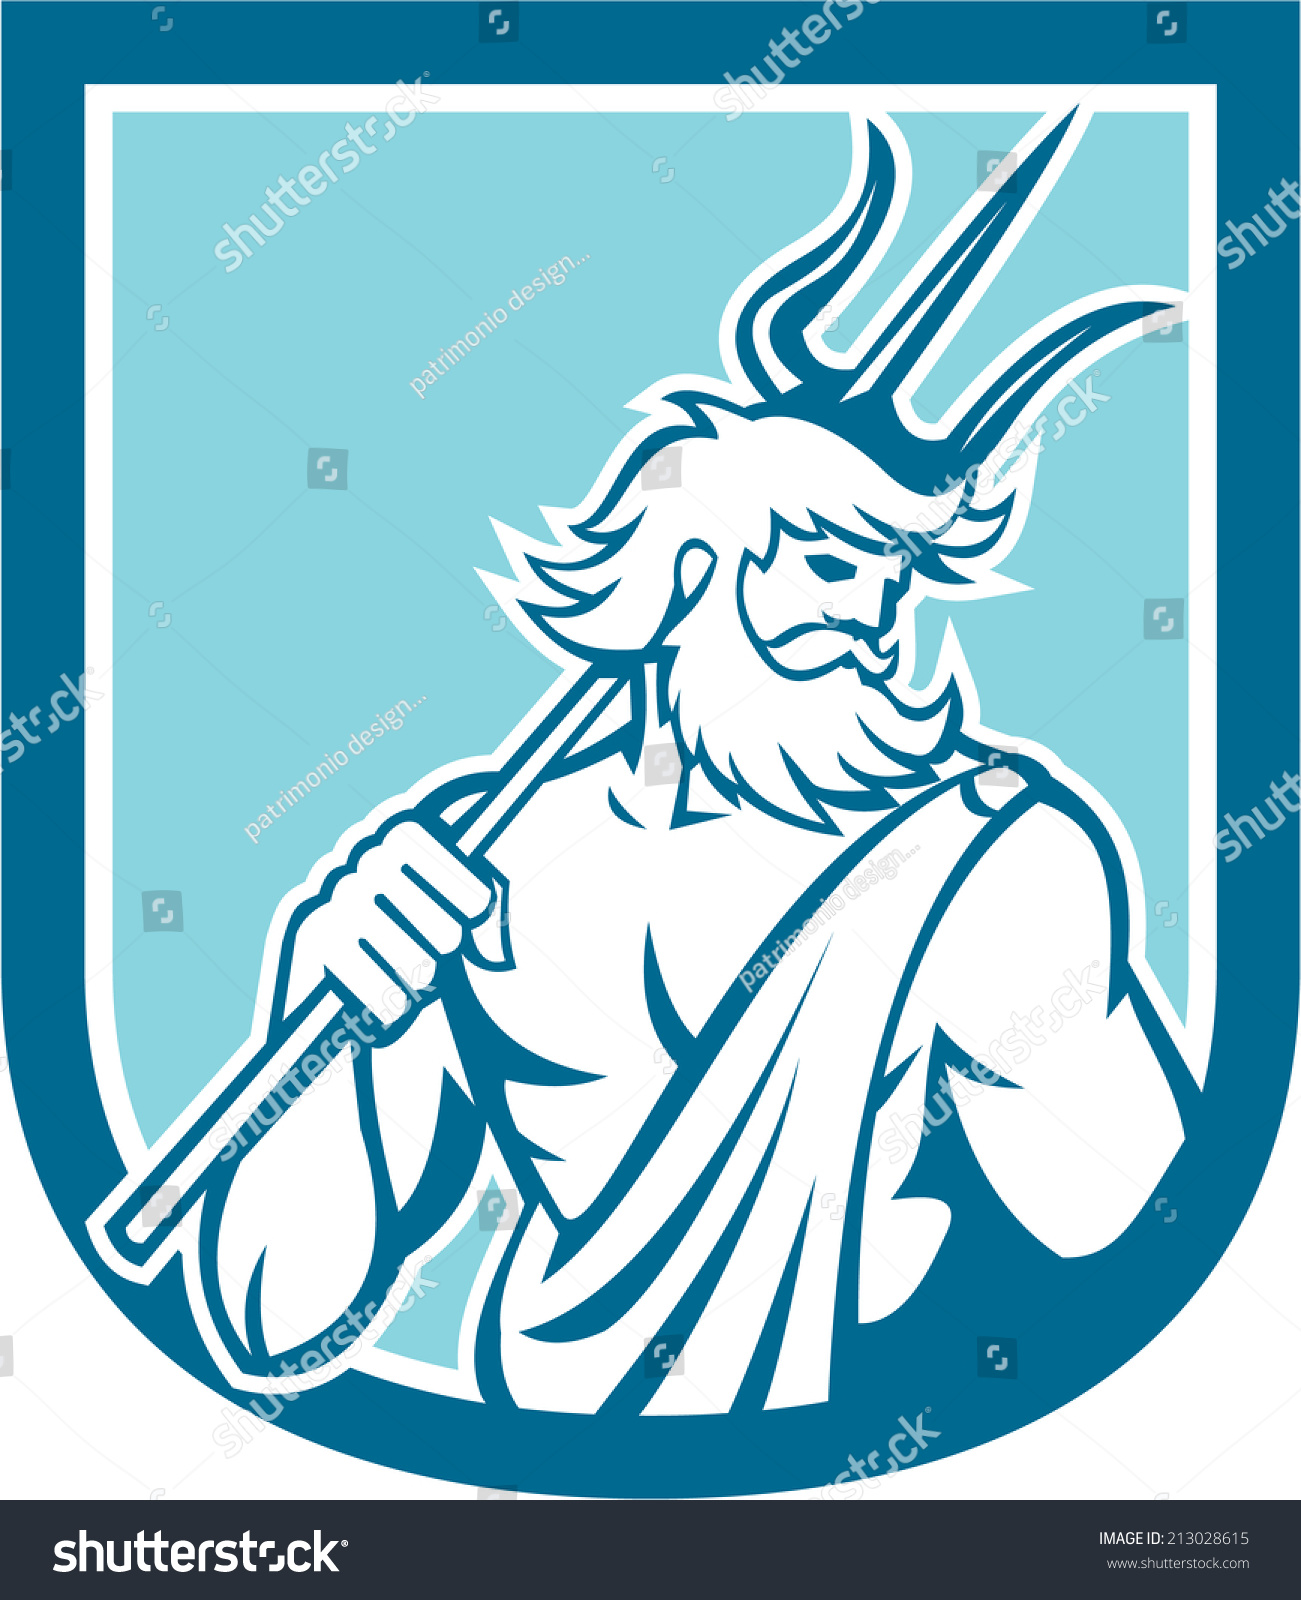 illustration roman god sea neptune poseidon stock illustration